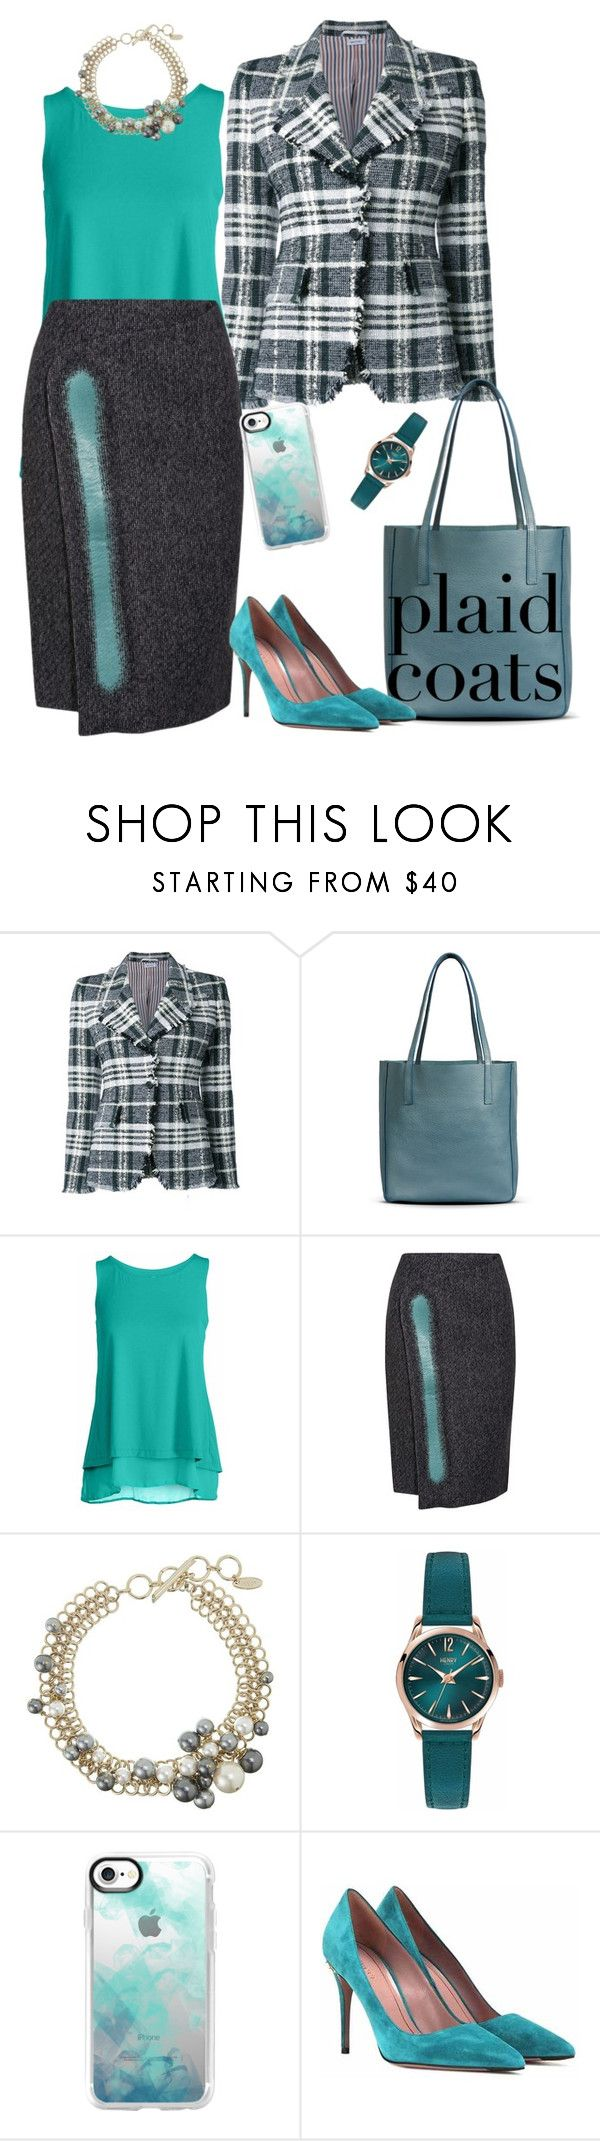 """Teal me true"" by naomi-mann ❤ liked on Polyvore featuring Thom Browne, Shinola, Conquista, Balenciaga, Lanvin, Henry London, Casetify, Gucci and plaidcoats"